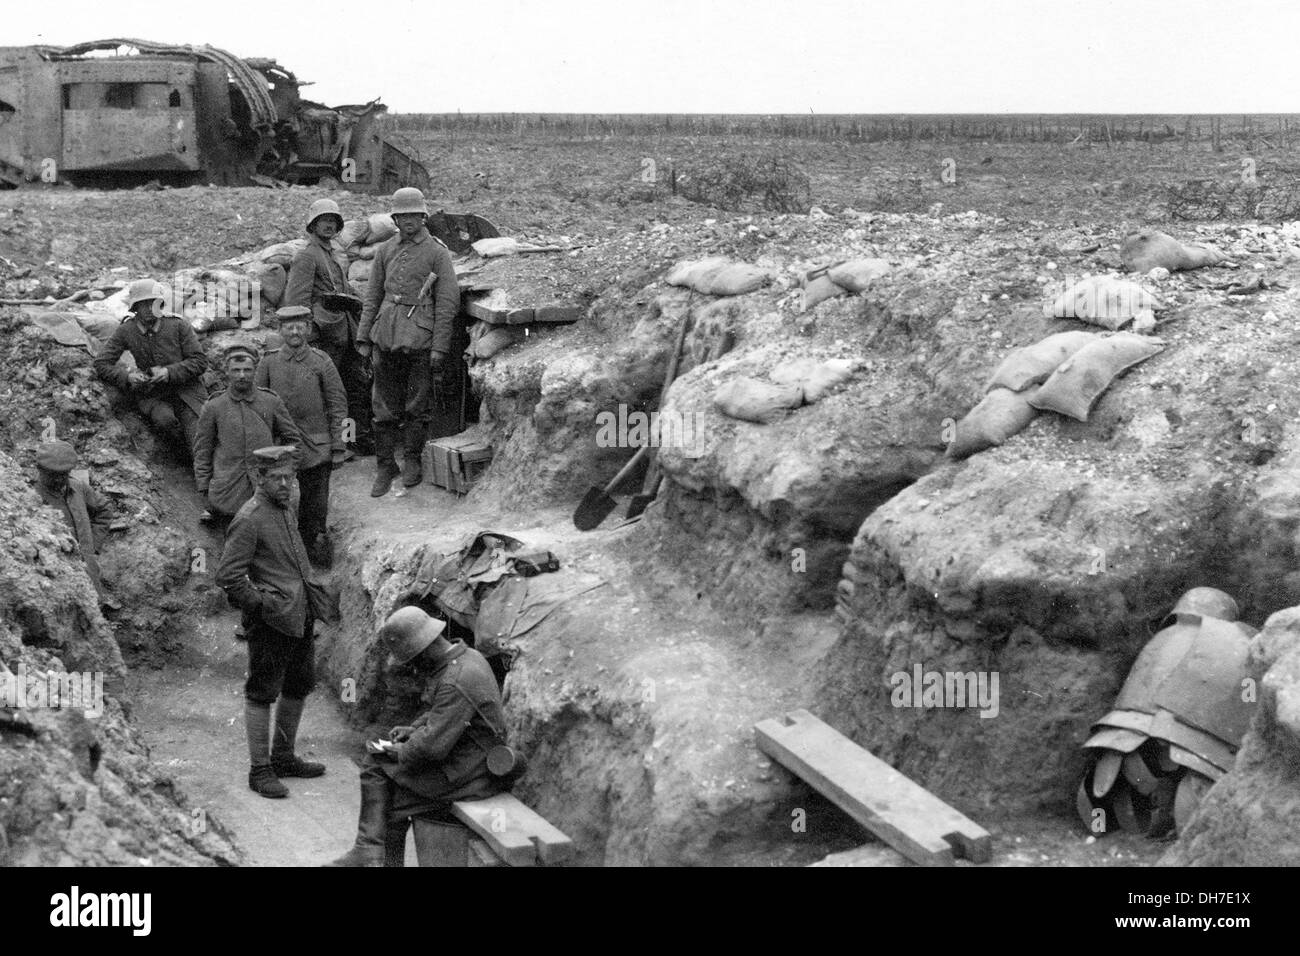 German troops rest in a frontline trench. In the background is a disabled British tank. - Stock Image